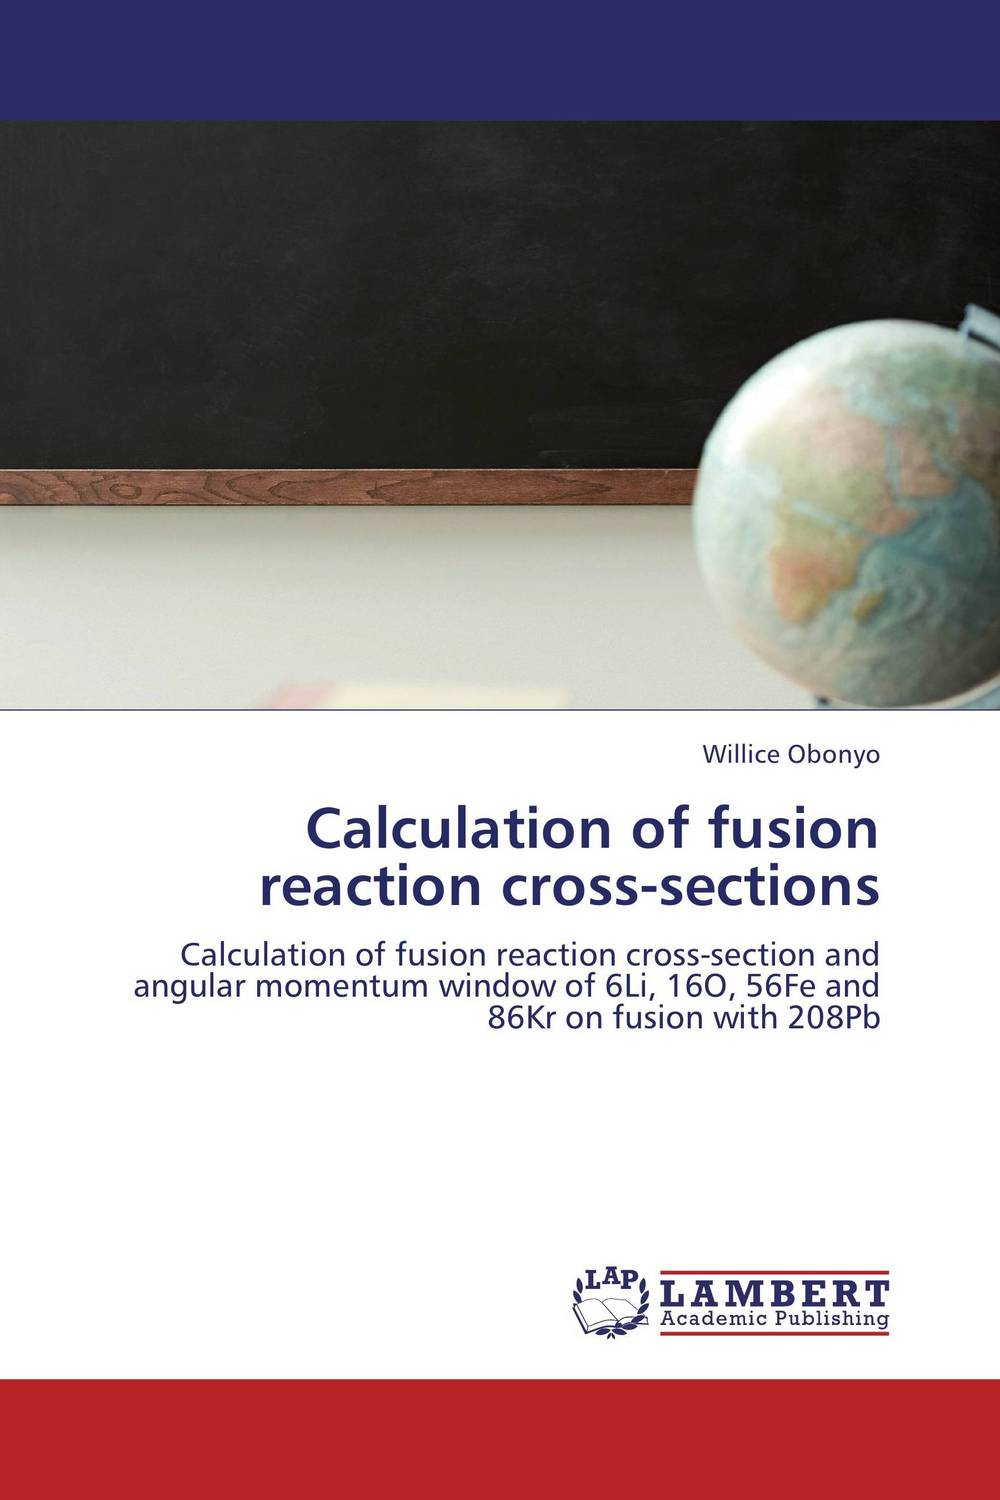 Calculation of fusion reaction cross-sections multimodal fusion of iris and fingerprint